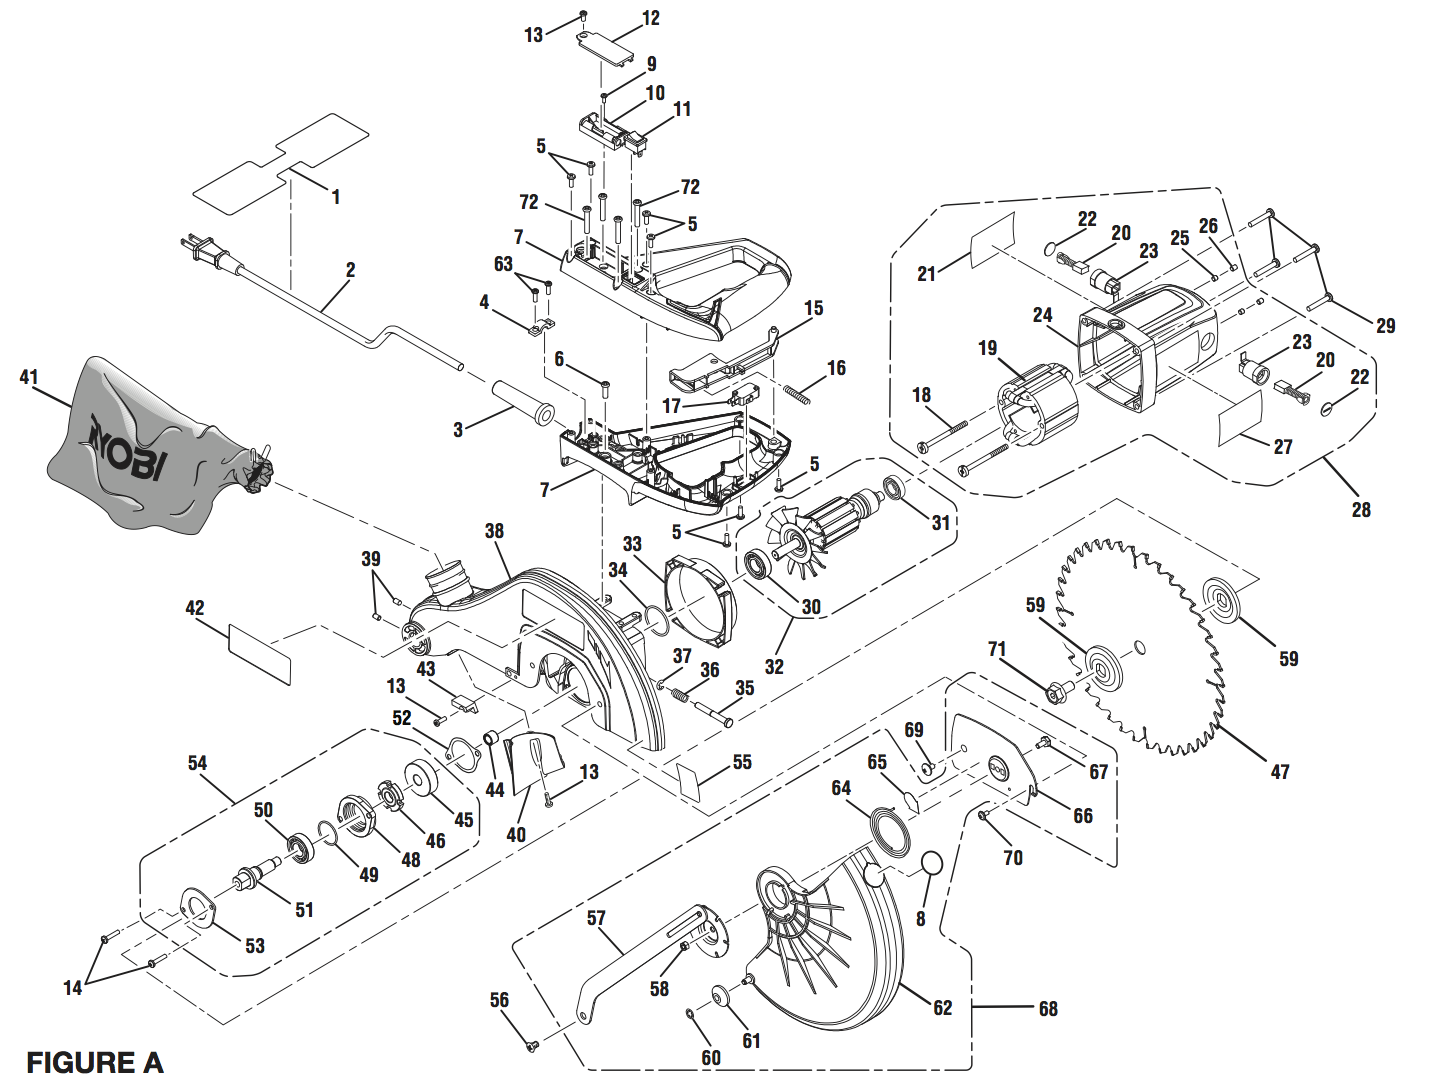 hight resolution of ts1344l ryobi miter saw exploded view parts diagram